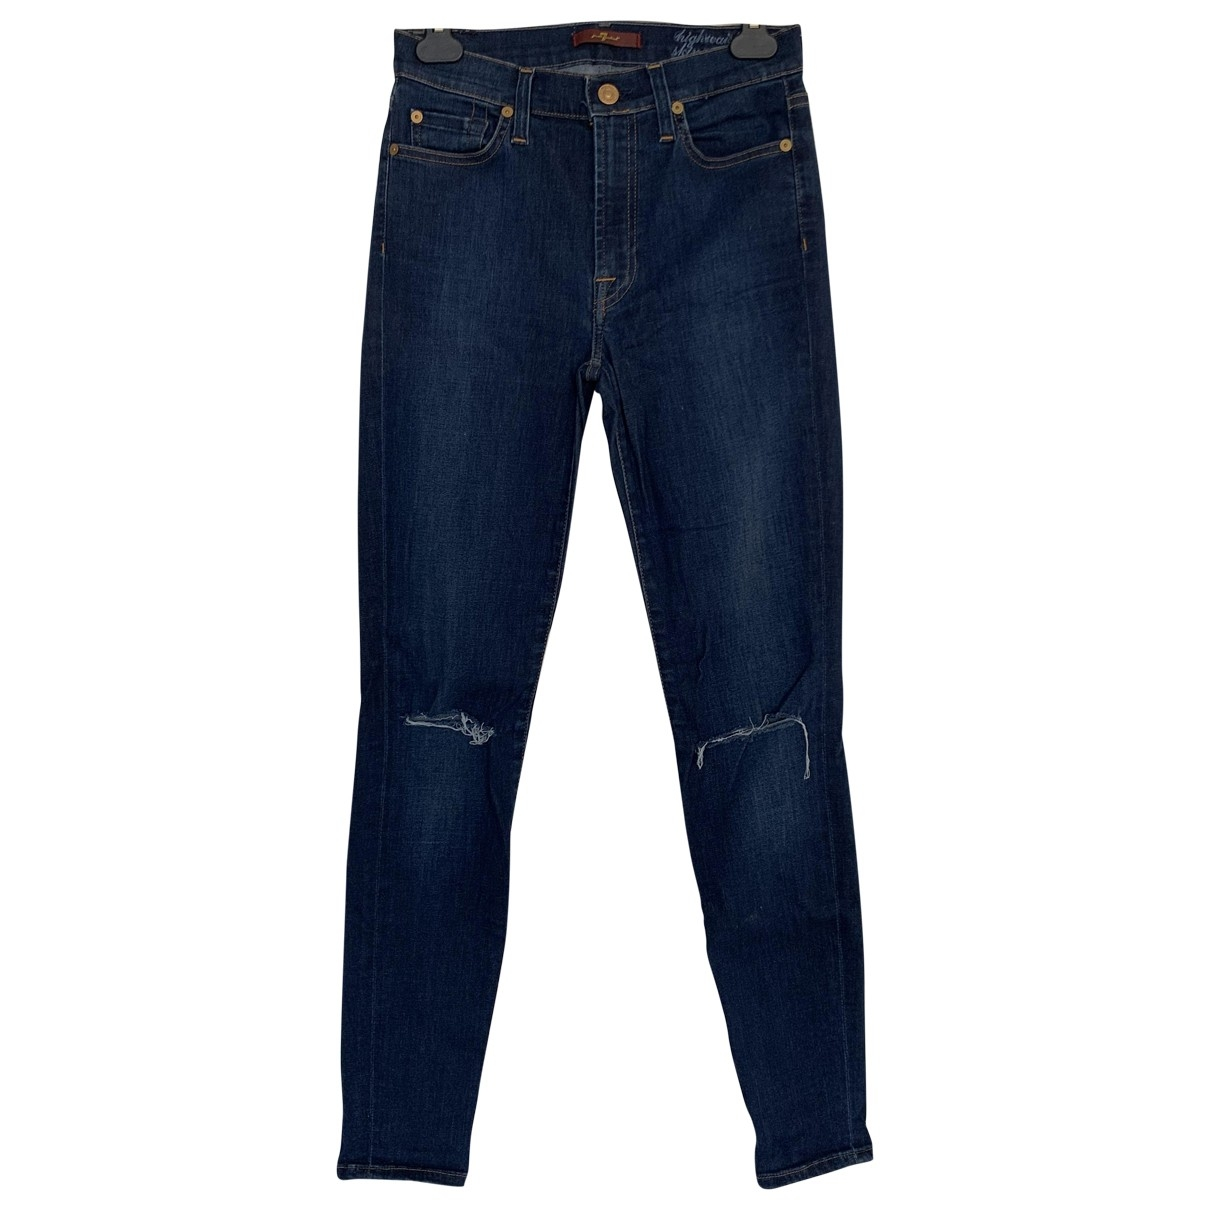 7 For All Mankind \N Blue Cotton Jeans for Women 27 US